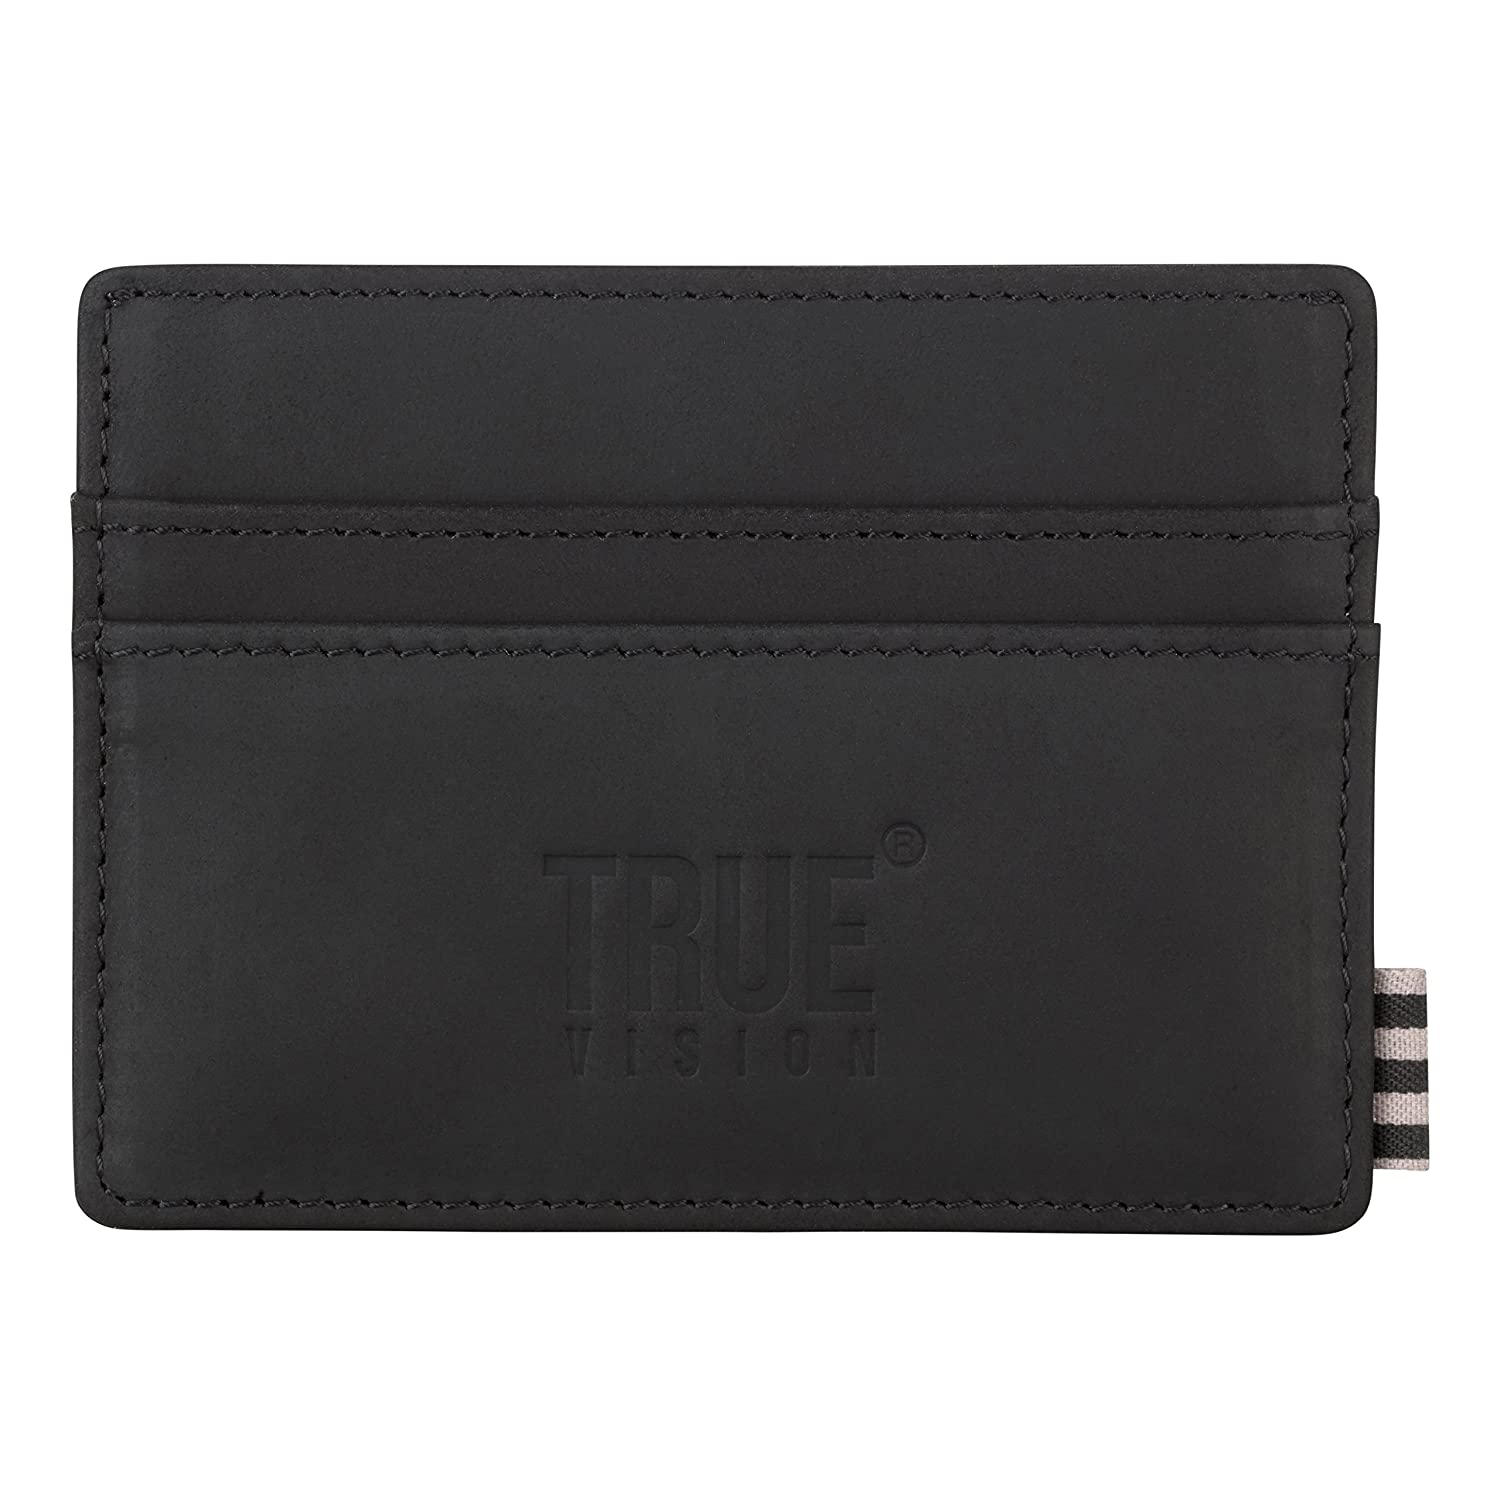 TRUE VISION RFID Blocking Leather Card Wallet for Men - Slim Nubuck Top Grain Black Leather Credit Card Wallet with Cotton Lined Compartments for Notes - Includes Gift Box. TRUECARDWALLETLEATHERBLACK